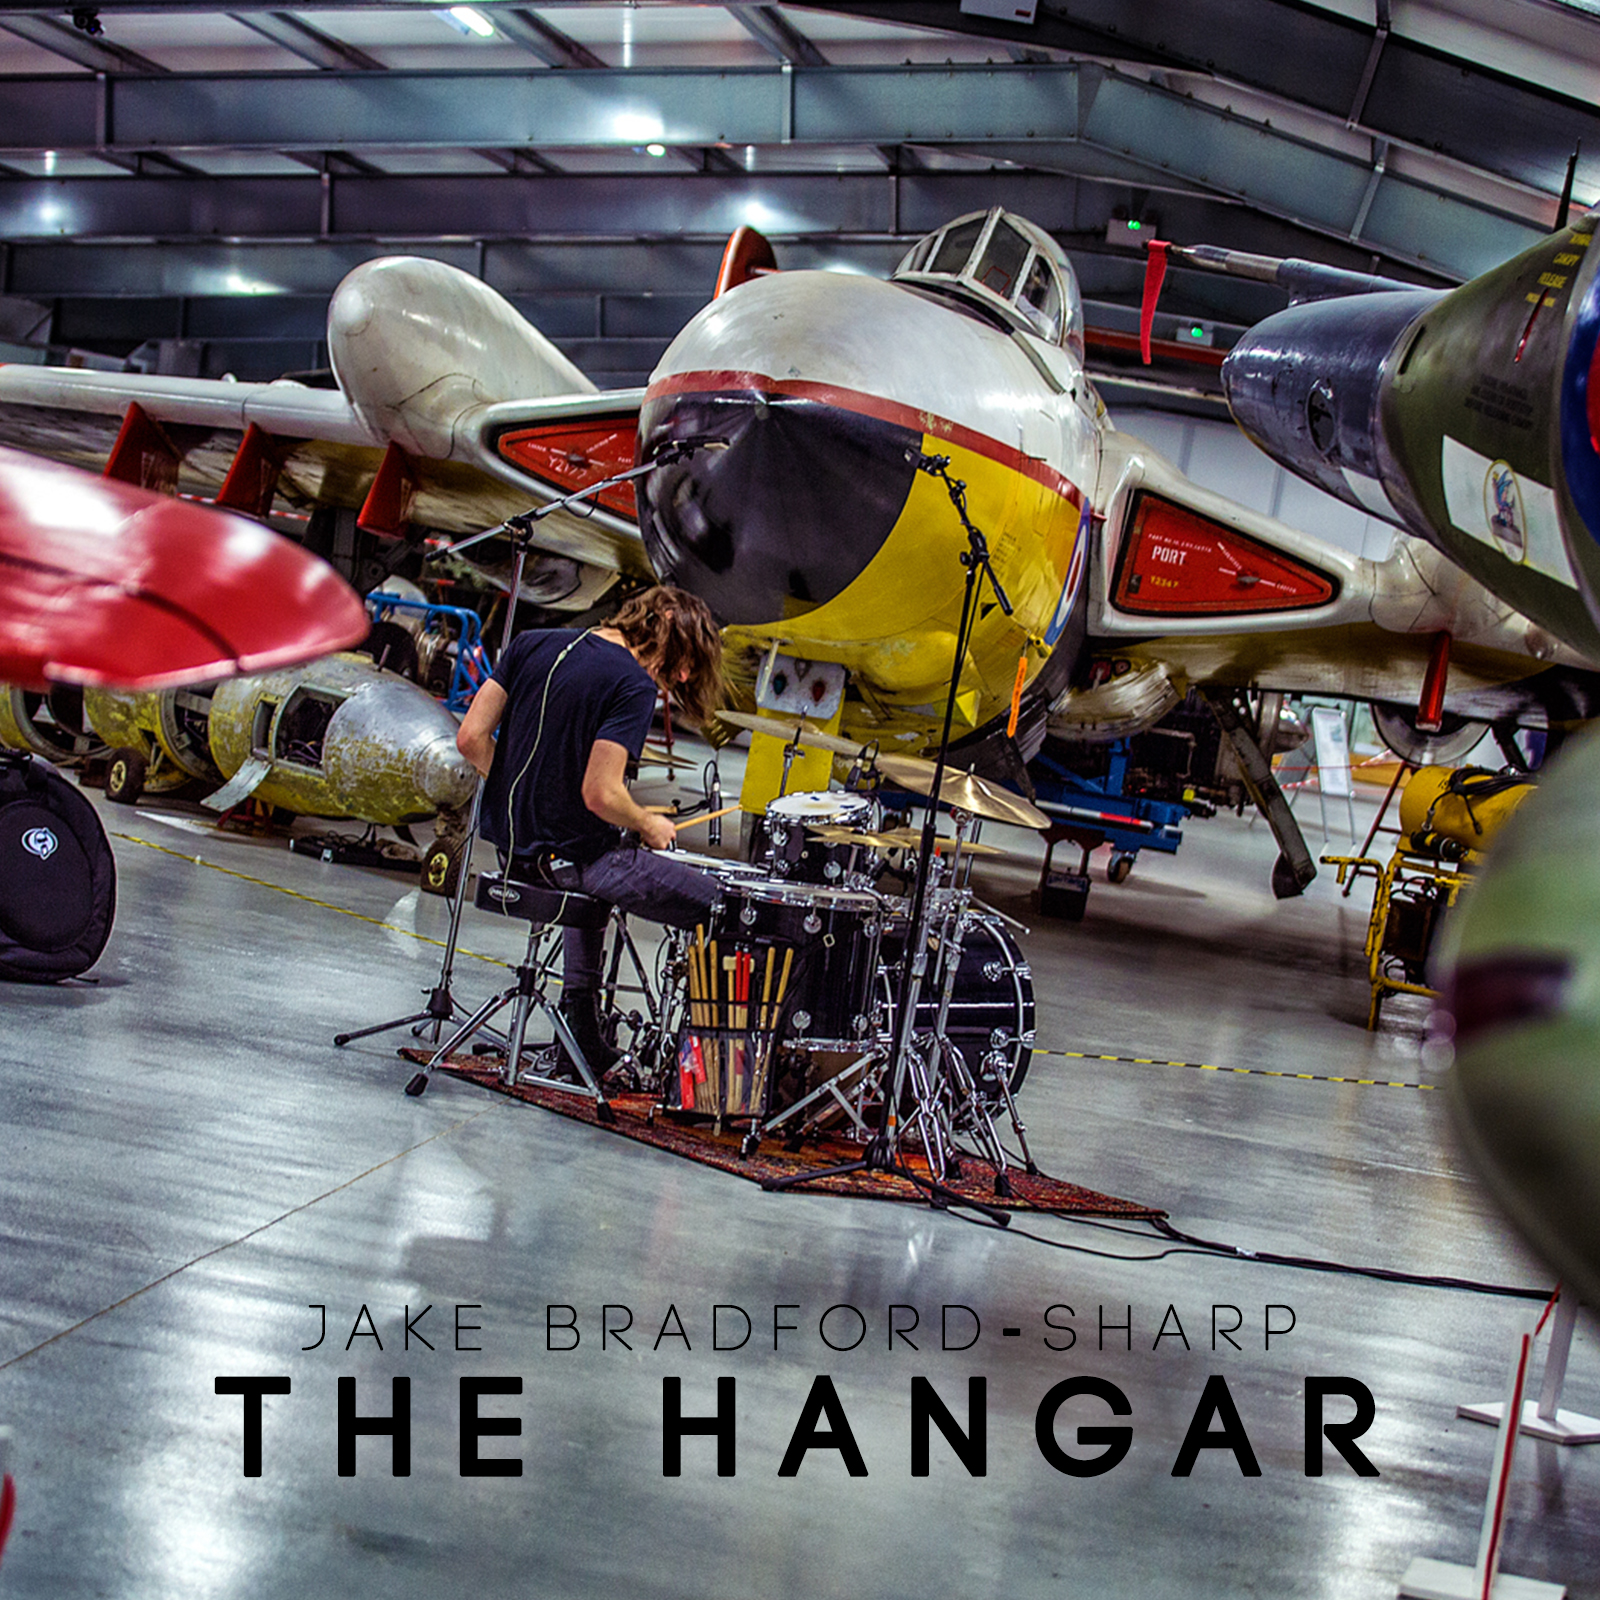 The Hangar Cover Art.jpg